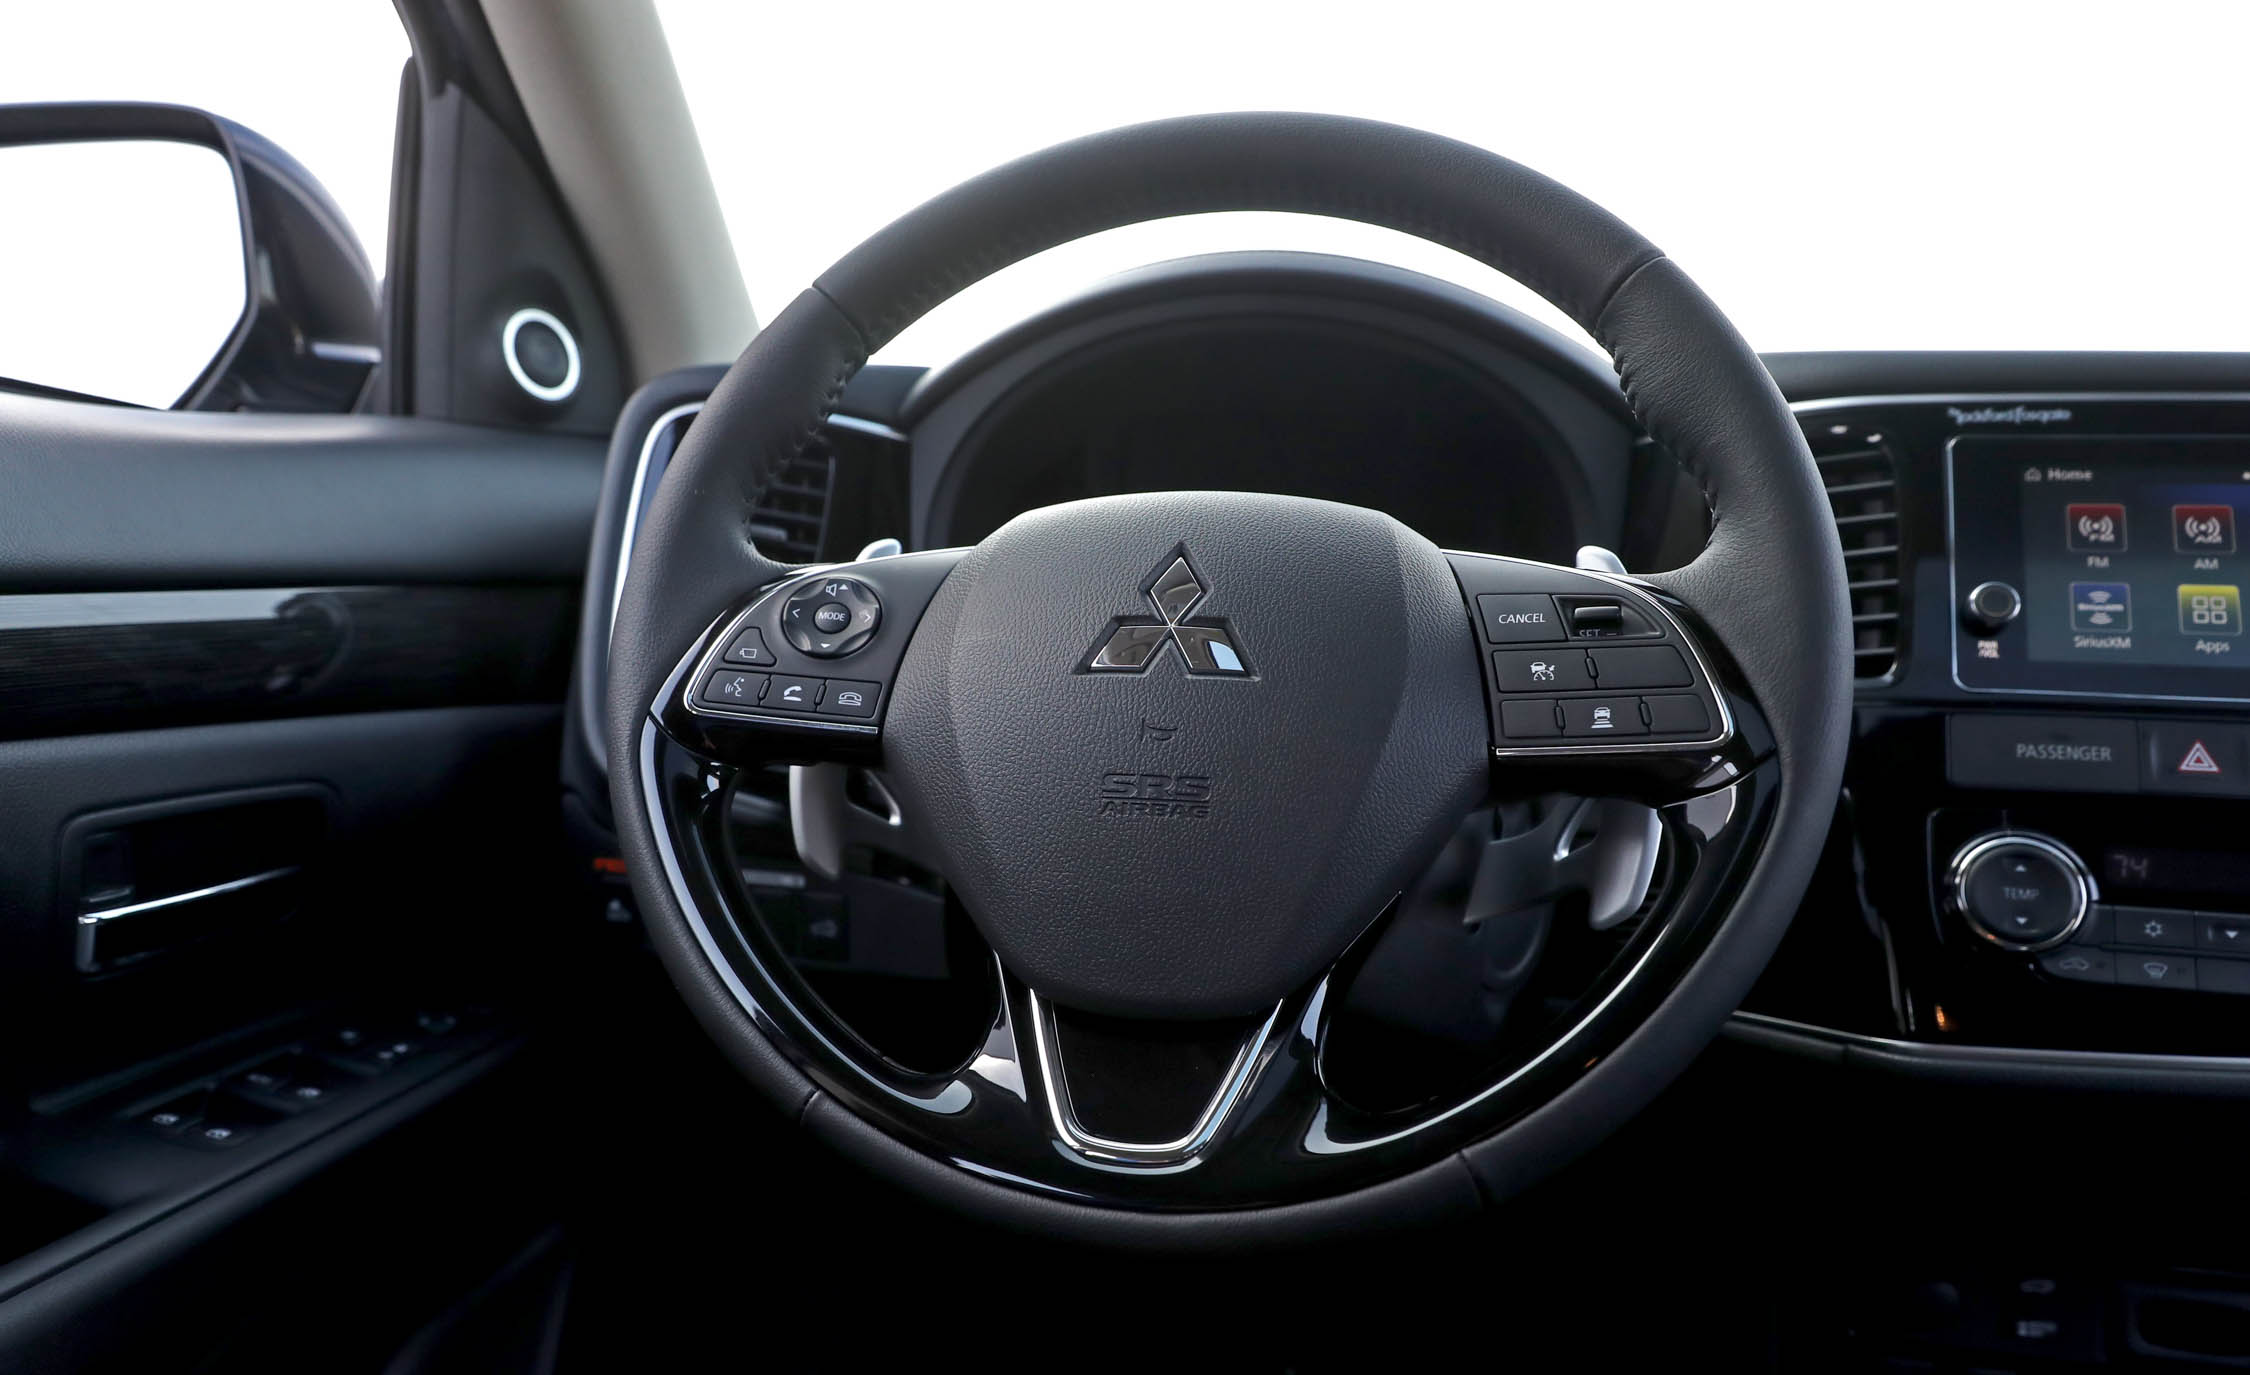 2017 Mitsubishi Outlander Gt Interior View Steering Wheel (View 15 of 34)